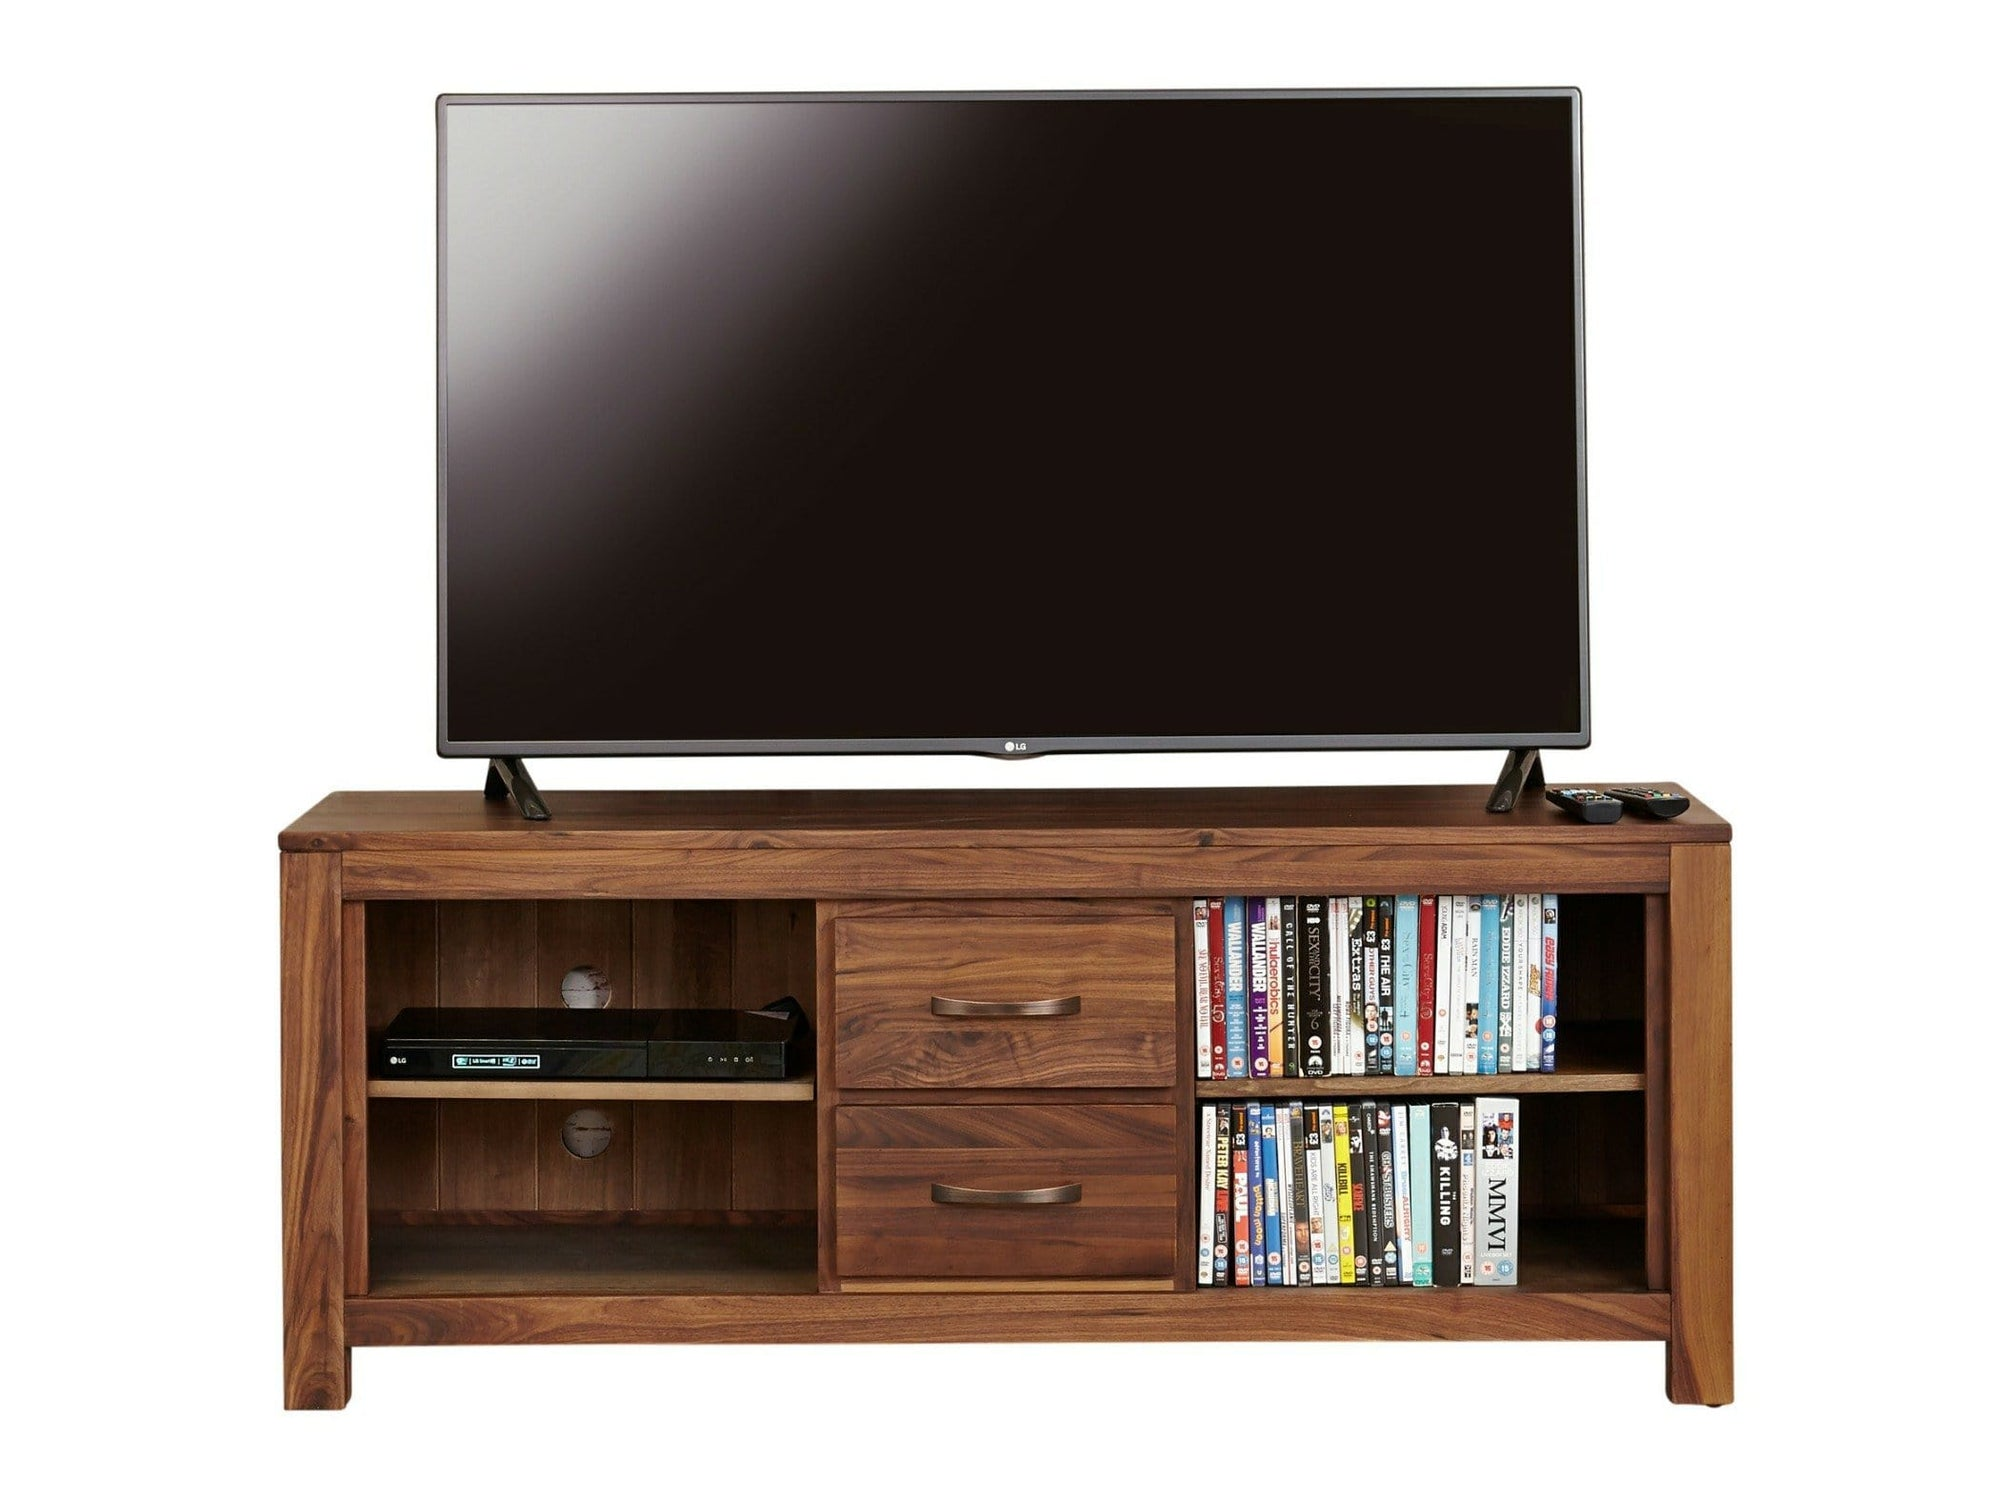 Large TV stand made from walnut wood. Includes two drawers and four shelves.